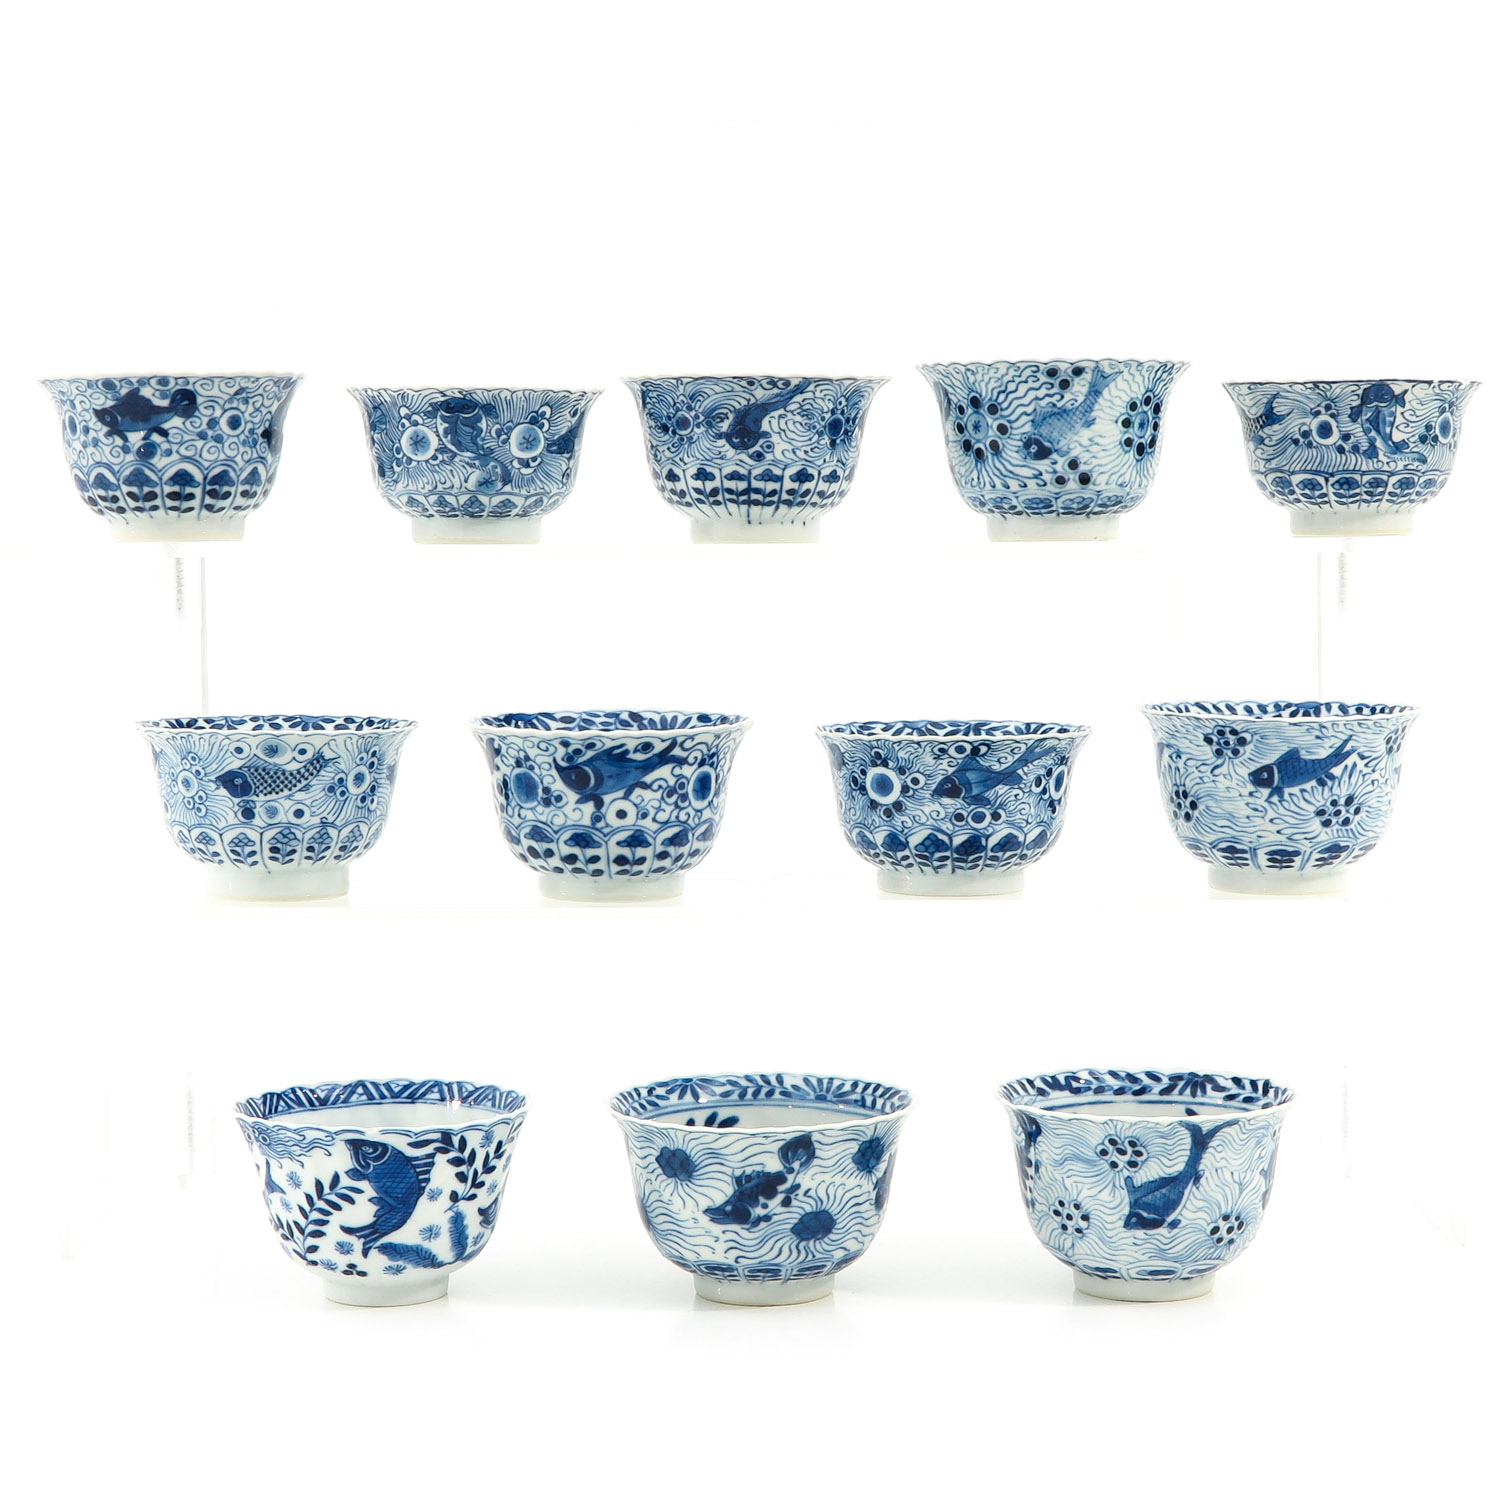 A Series of 12 Cups and Saucers - Image 2 of 10